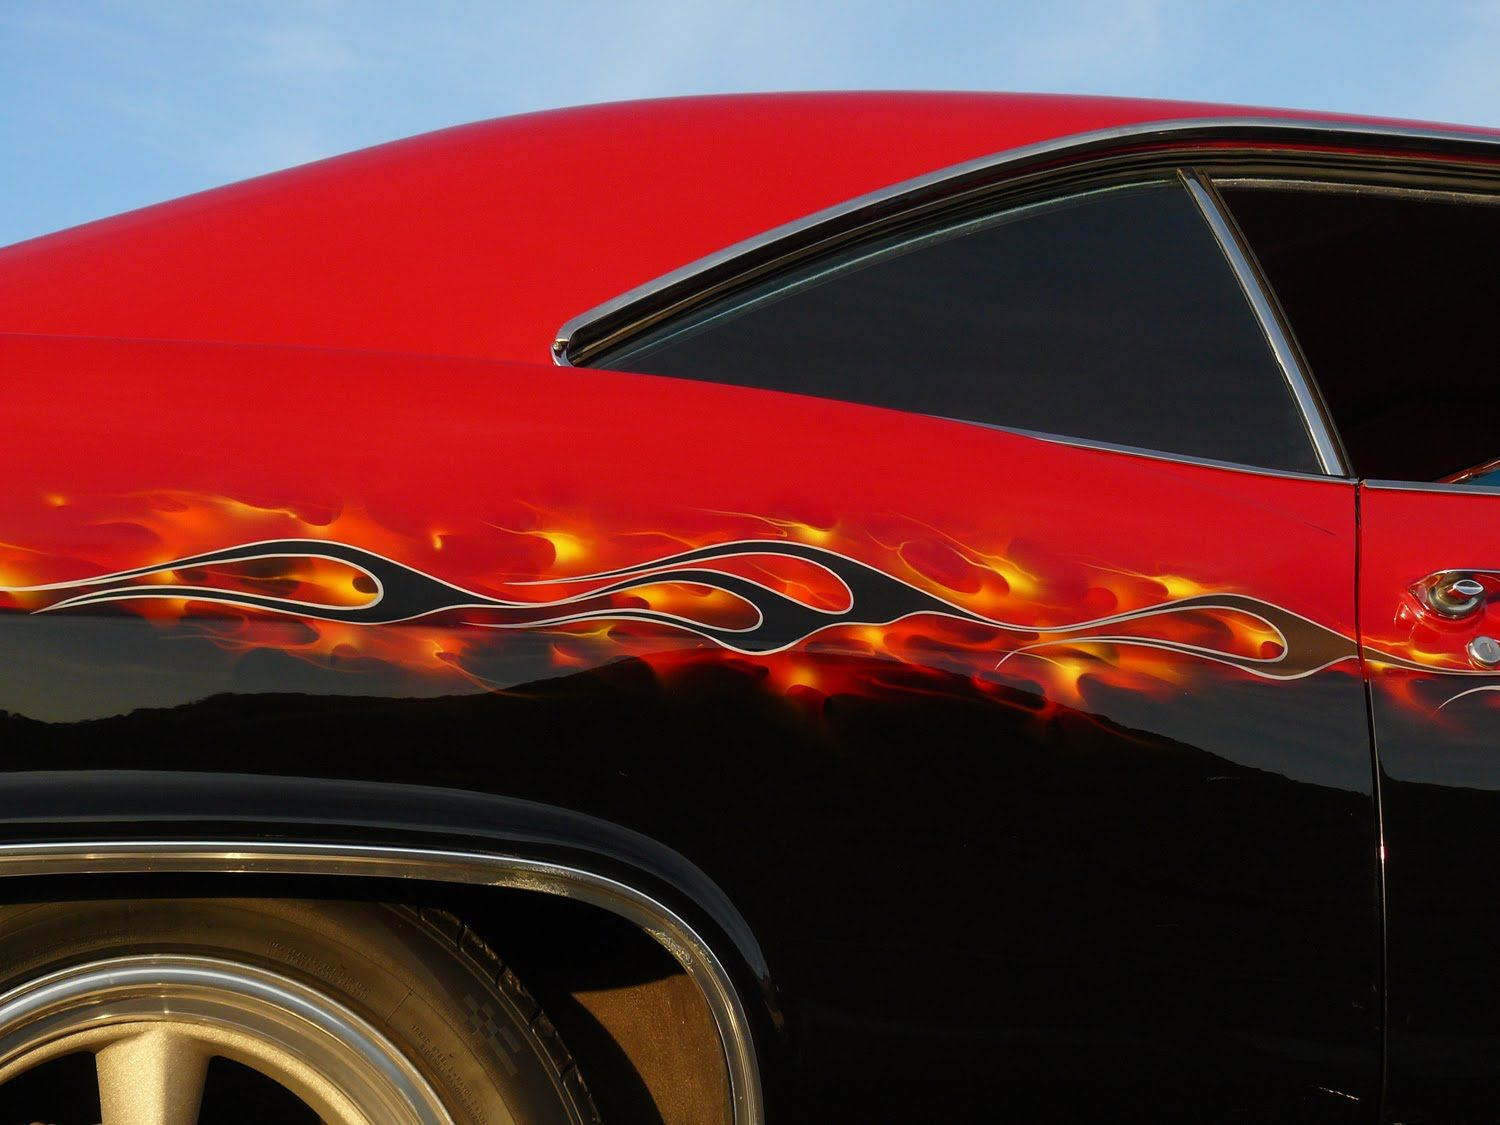 images of cars painted